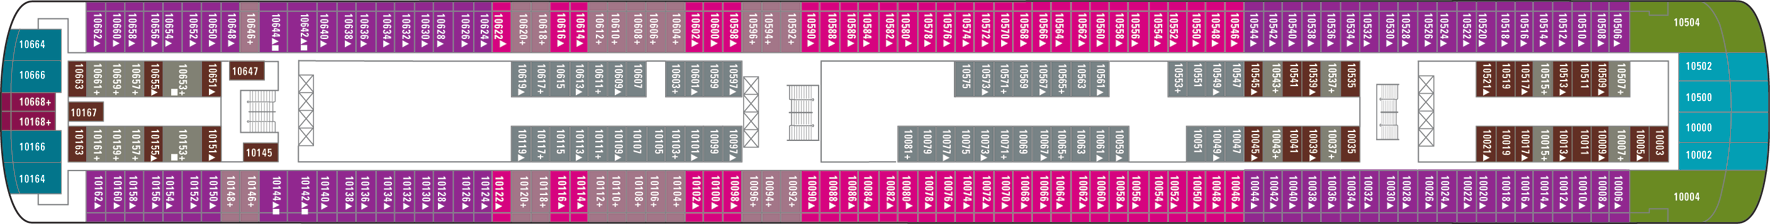 Norwegian Cruise Line Norwegian Jewel Deck Plans Deck 10.png